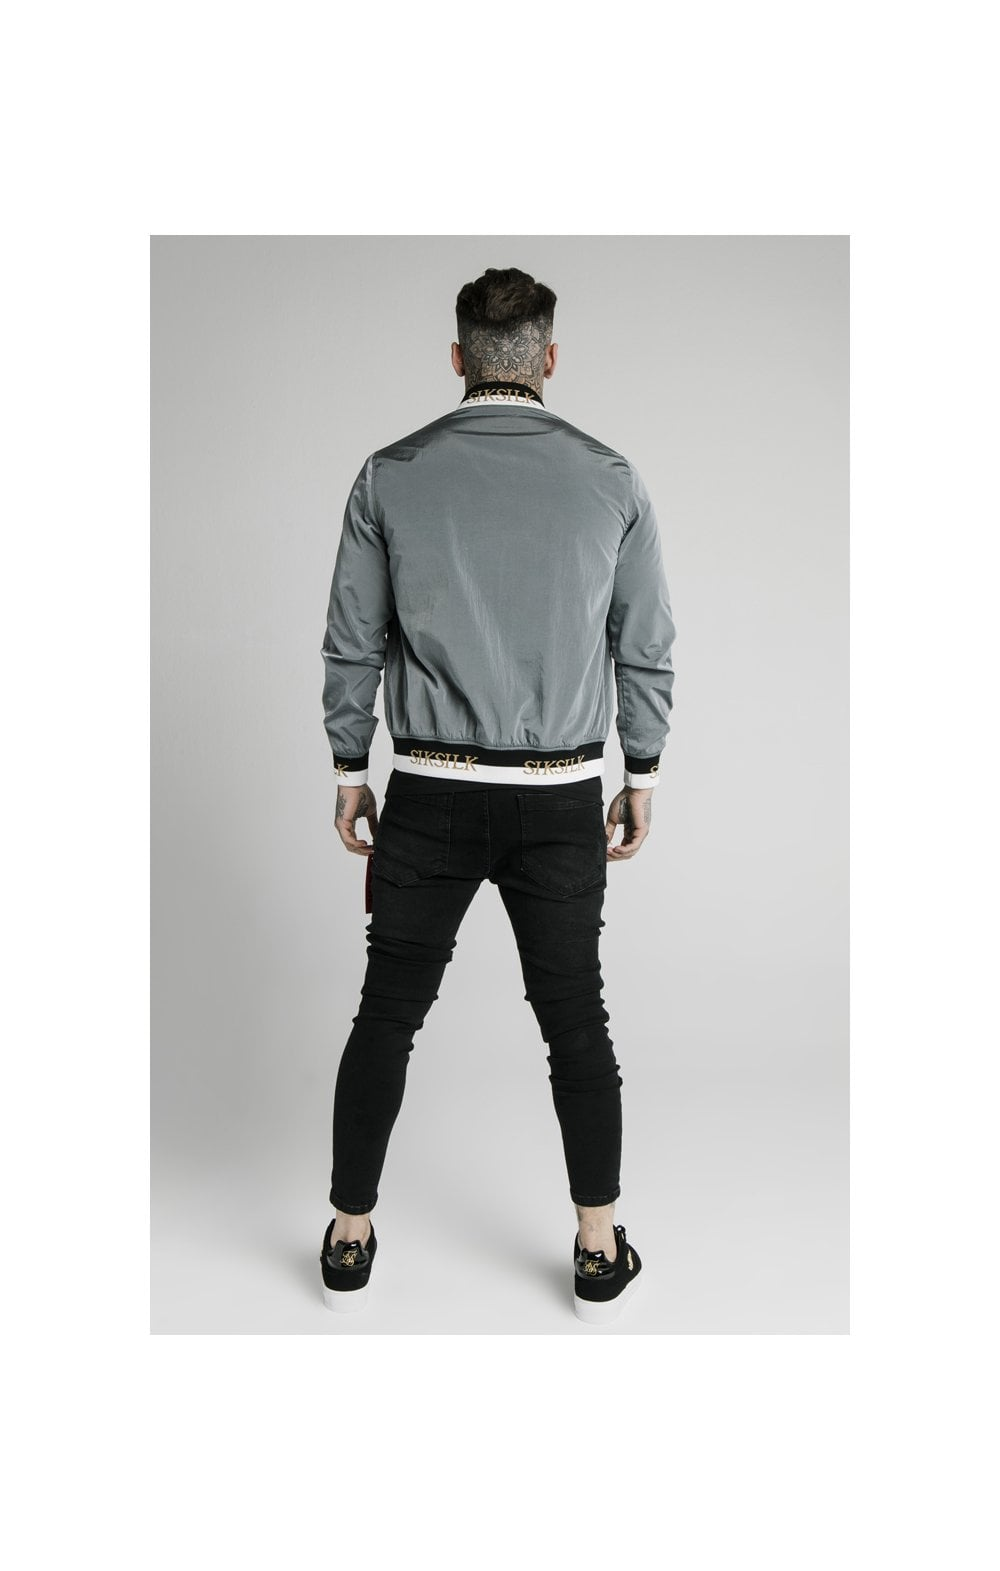 SikSilk Crushed Nylon Bomber Jacket - Grey (6)